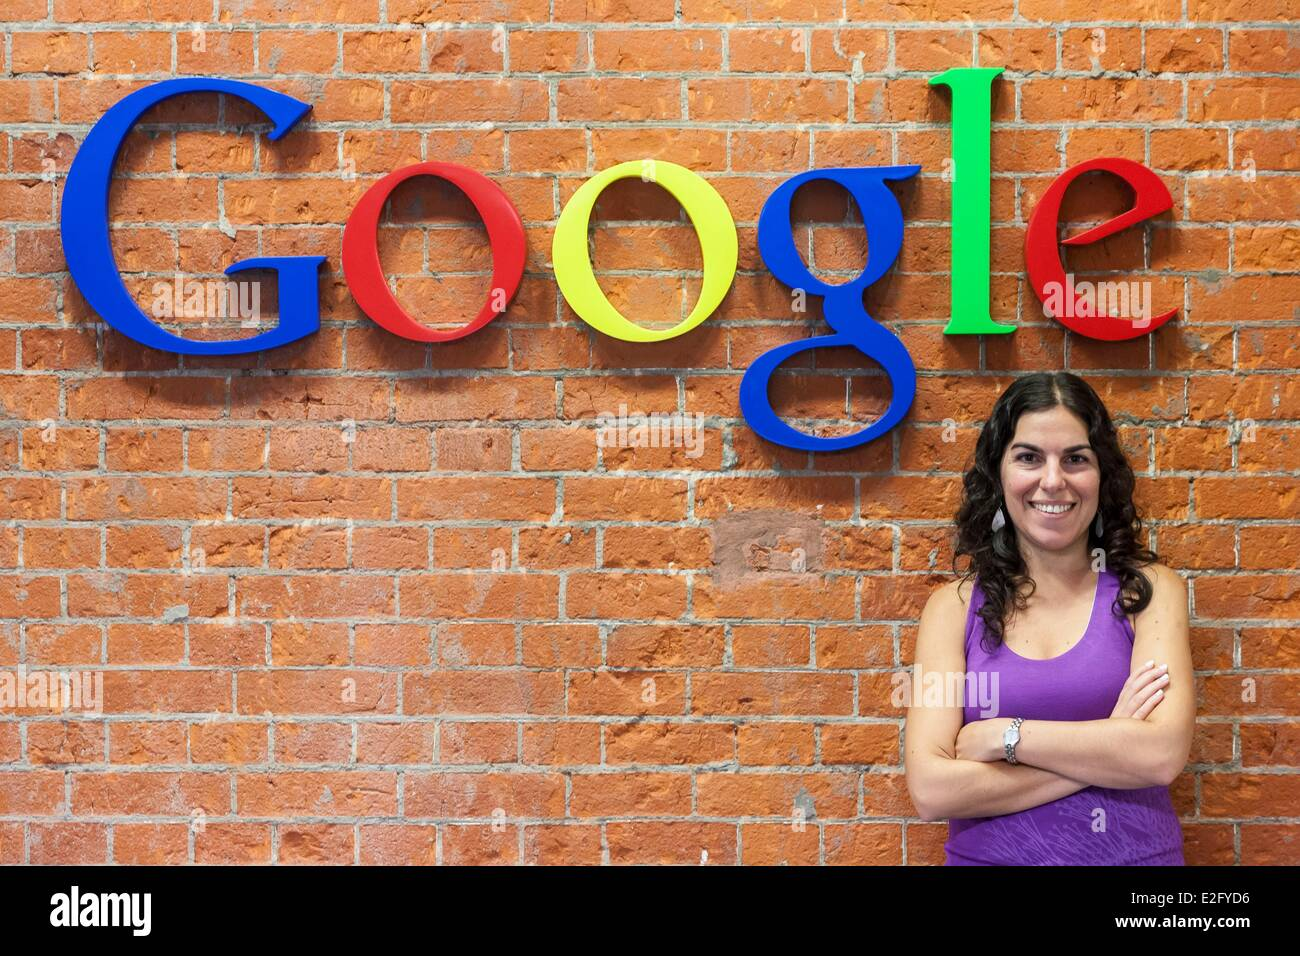 Argentina Buenos Aires Puerto Madero district headquarters of Google Argentina an employee at the logo - Stock Image